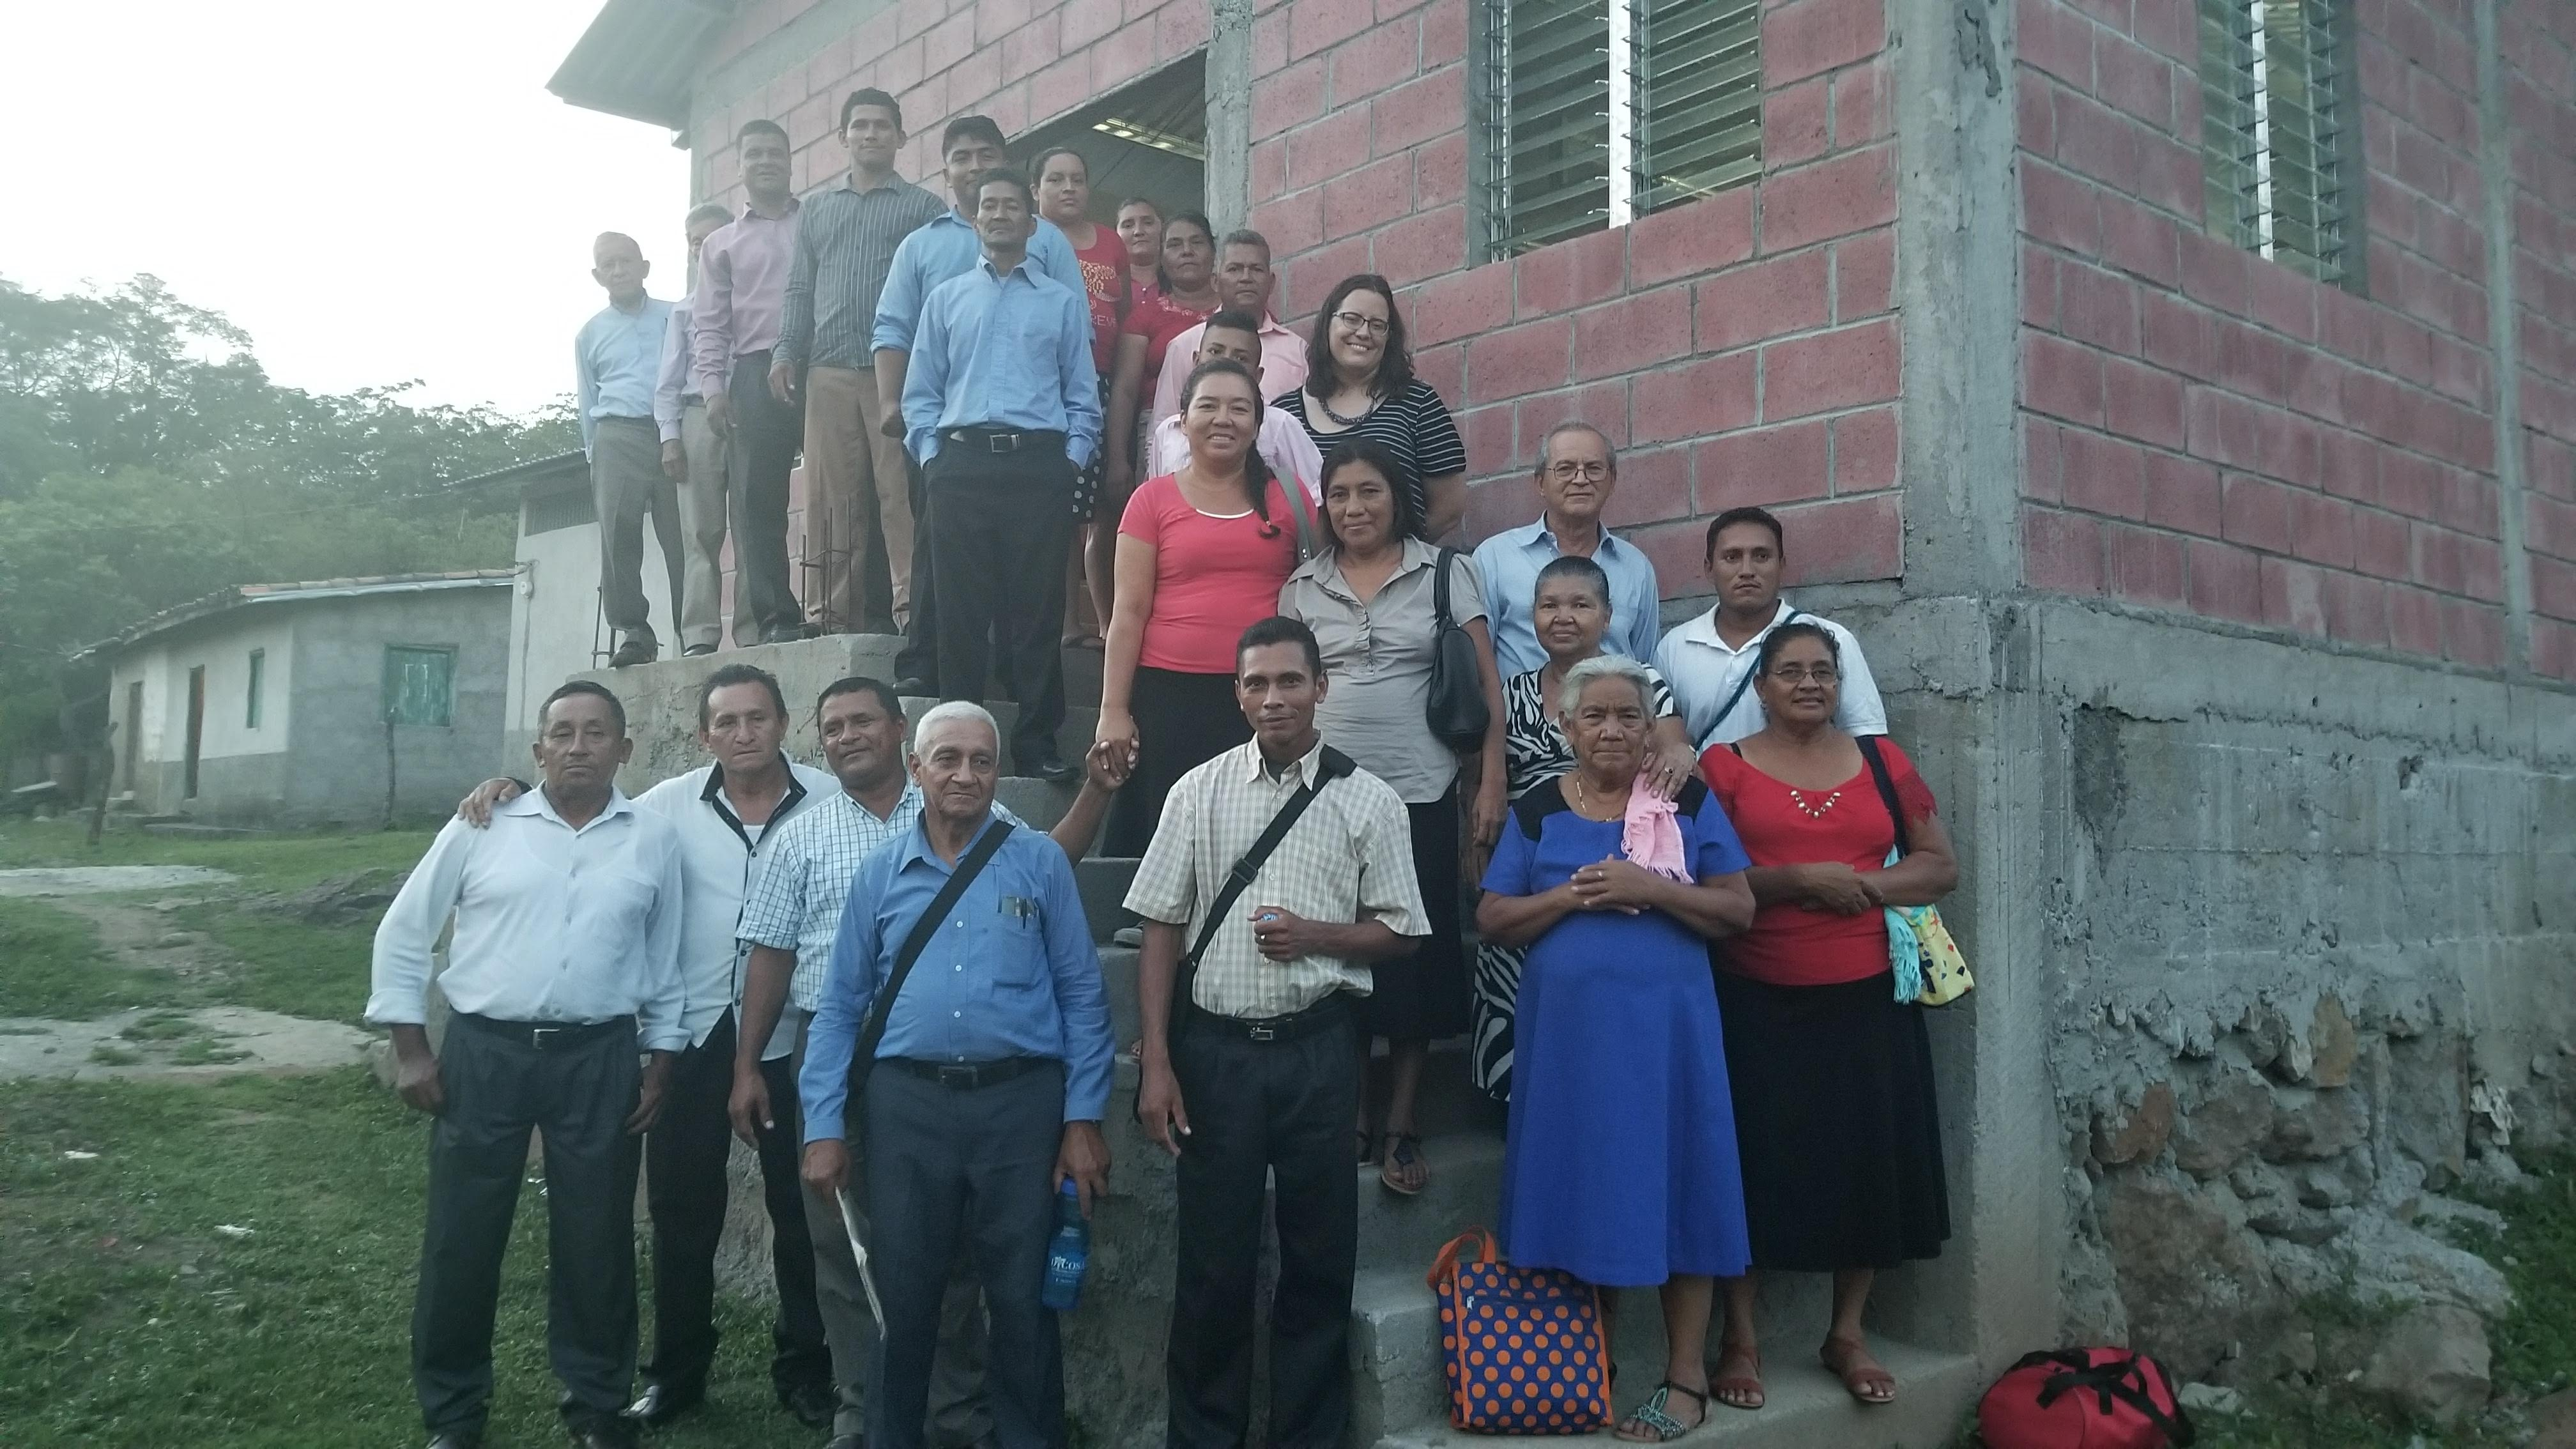 Deacons, elders, pastors, and other church leaders in the Moropocay region in a presbytery training session.